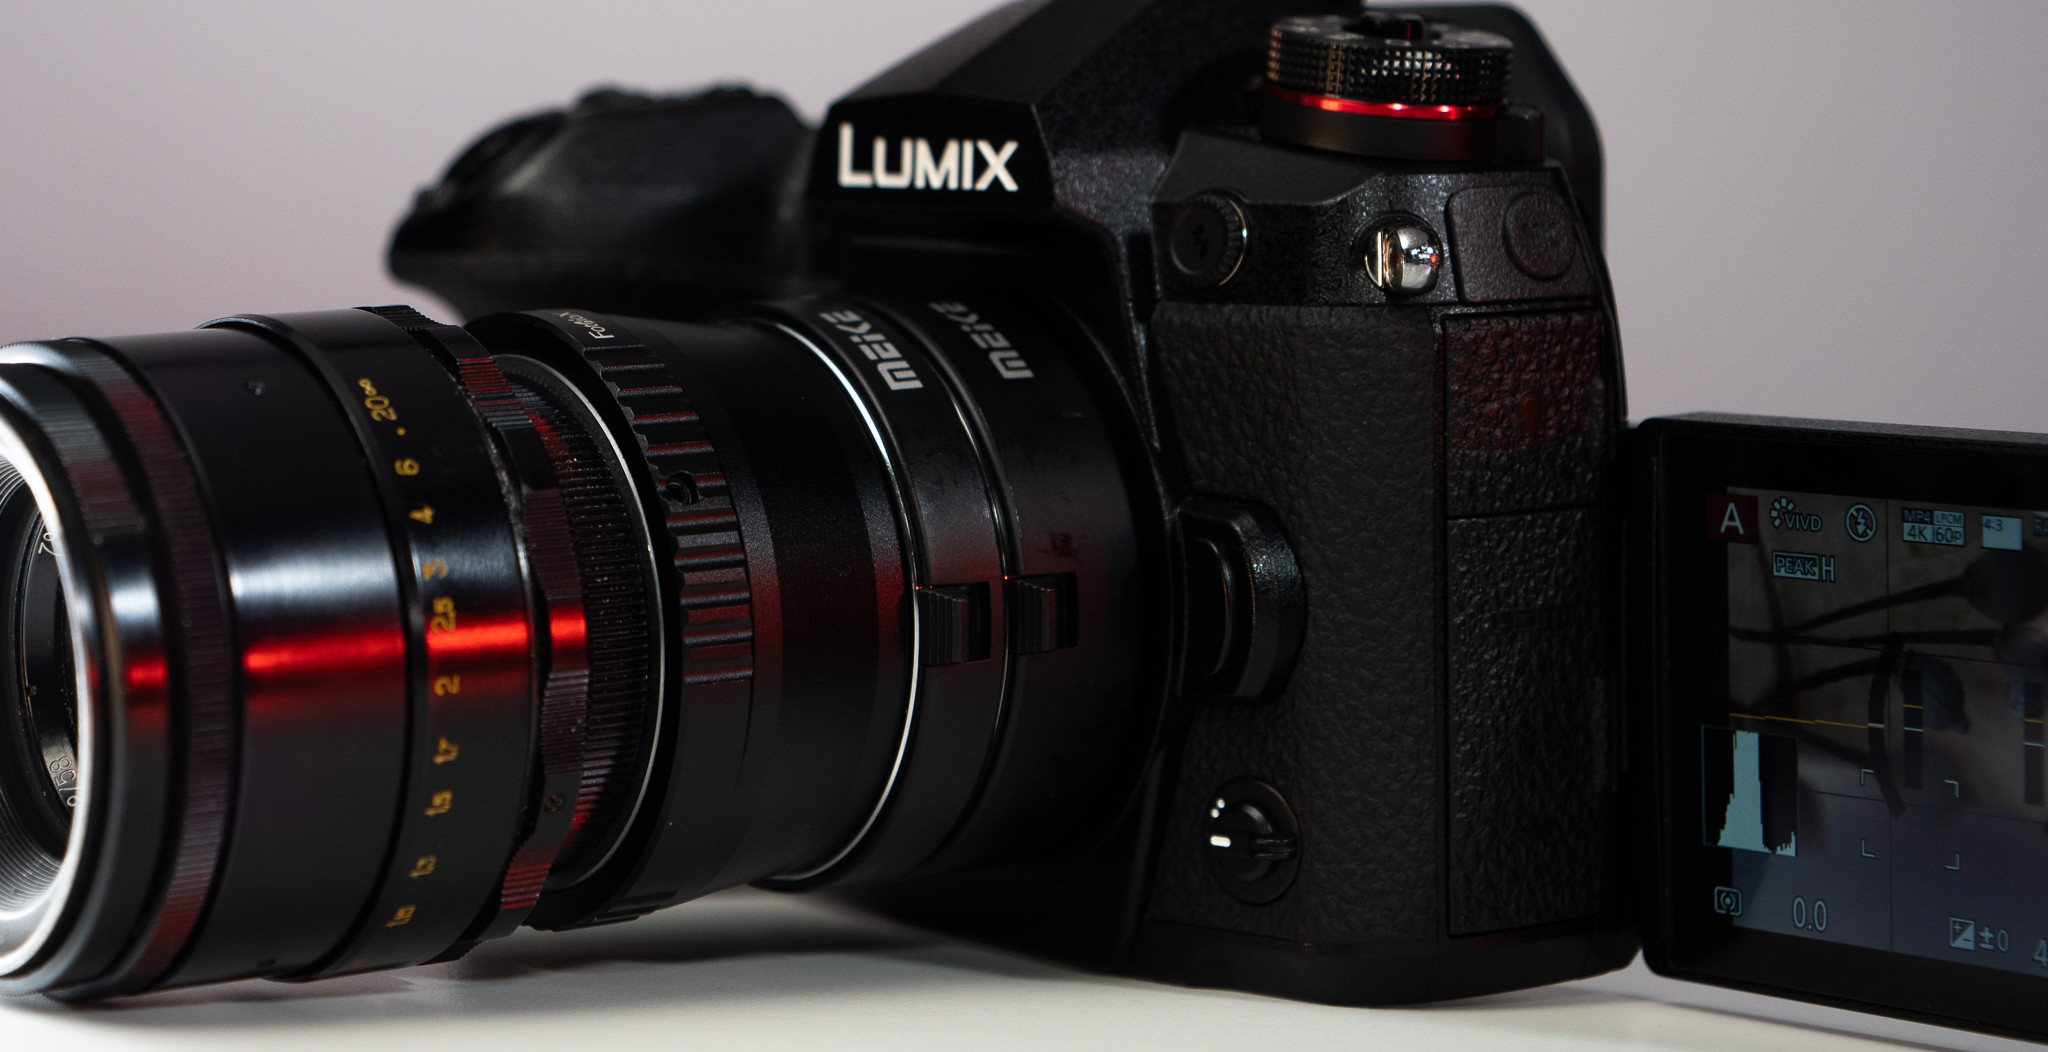 LUMIX G9 with Helios lens and MEIKE macro extension tubes